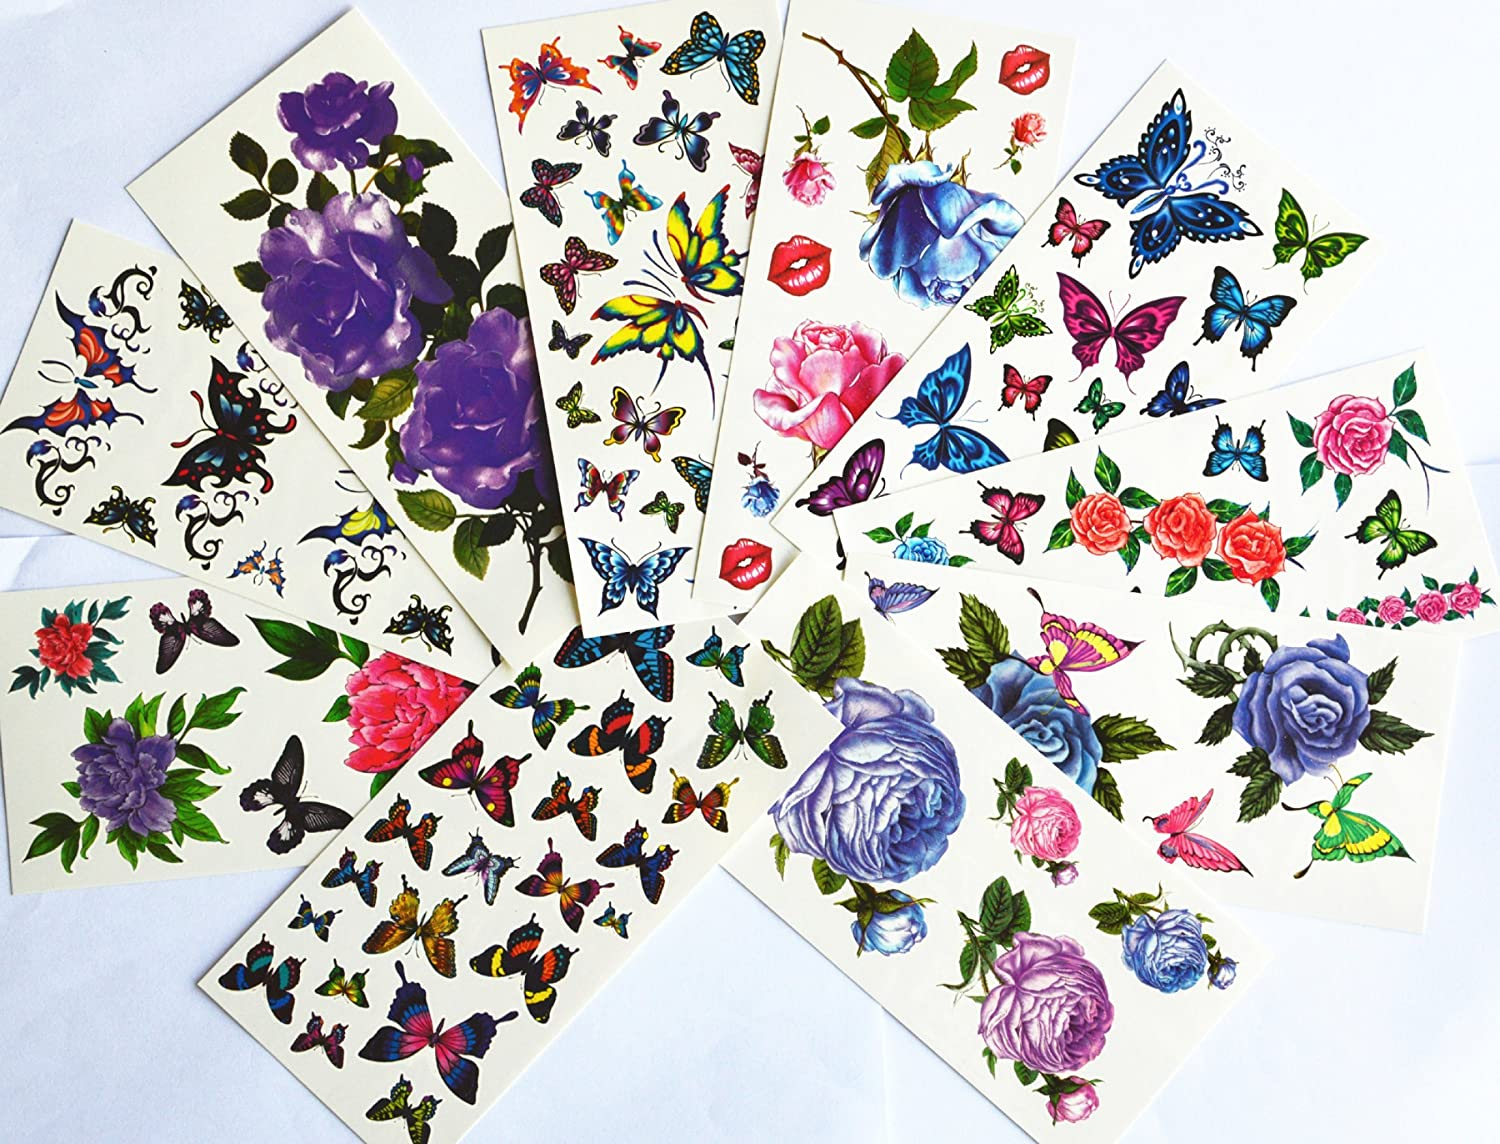 10pcs/package hot selling temporary tattoo stickers various designs including purple peony/blue and red roses/colorful flowers and butterflies/red lips/etc. supplier VOchOn5i